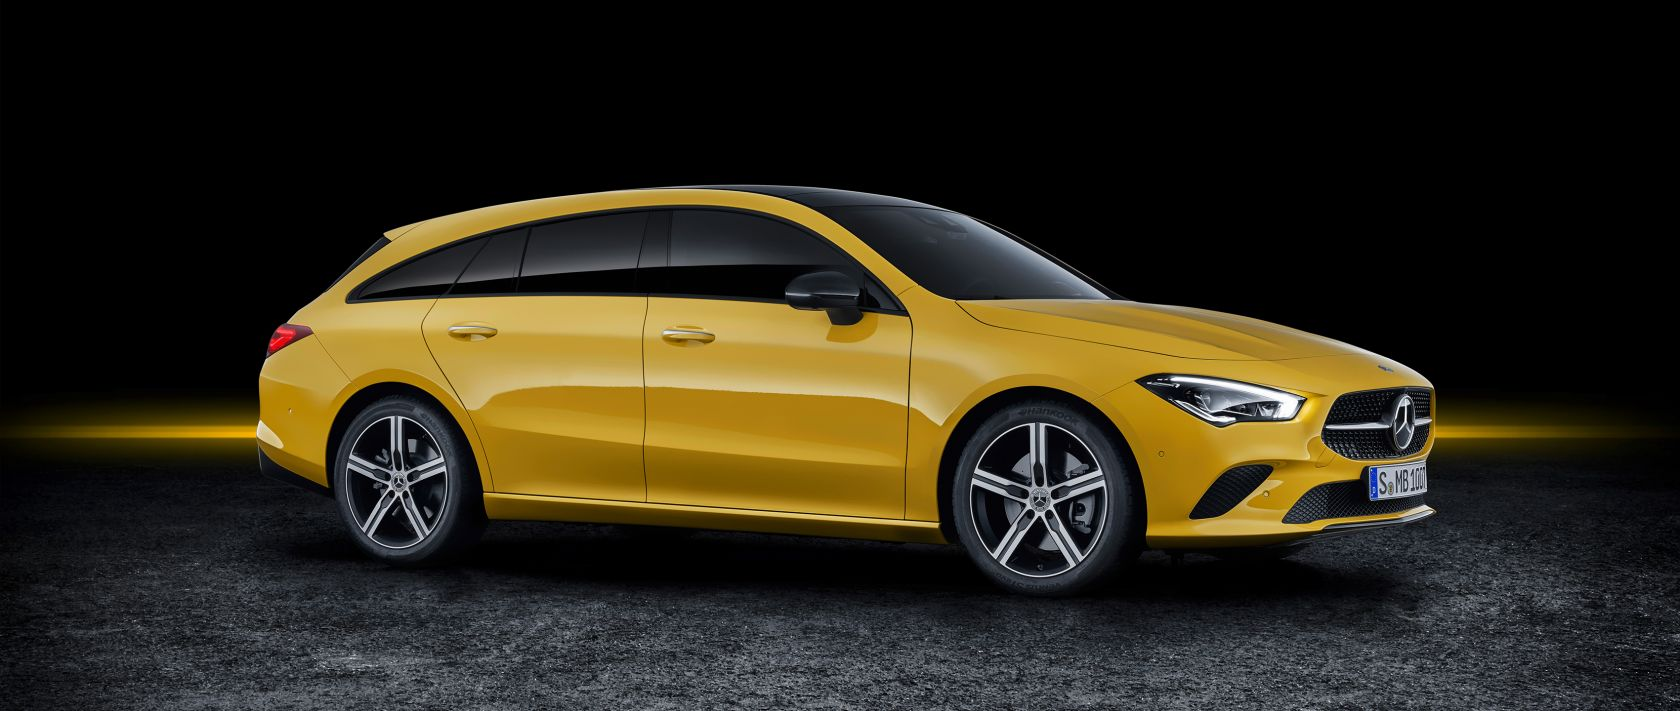 The 2019 Mercedes-Benz CLA Shooting Brake (X 118) in sun yellow in the photo studio.